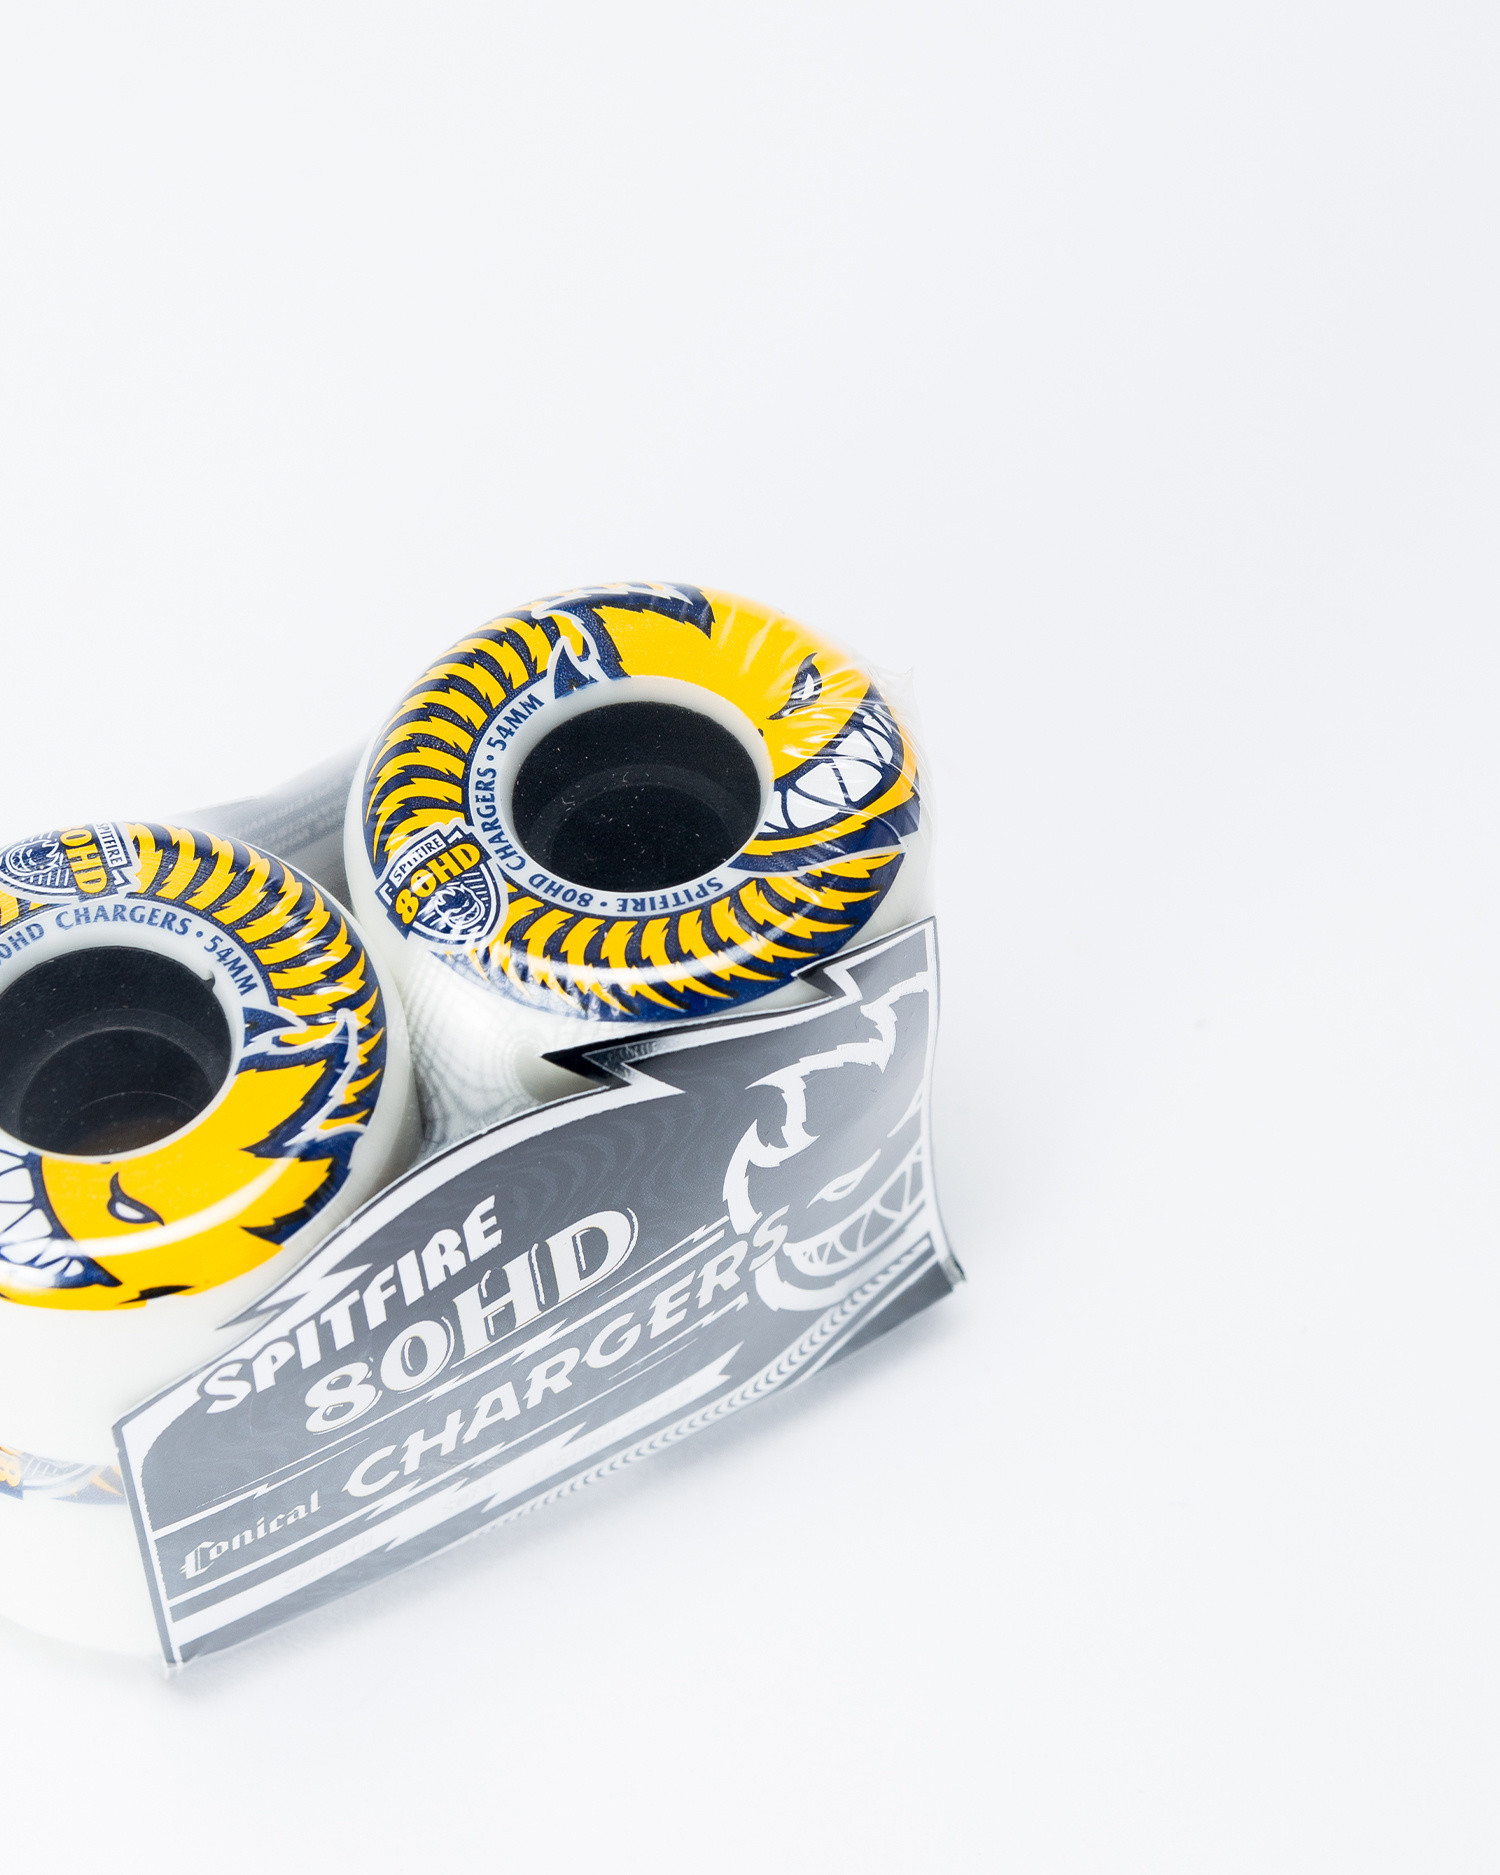 Spitfire Charger Whire yellow 54mm Wheels